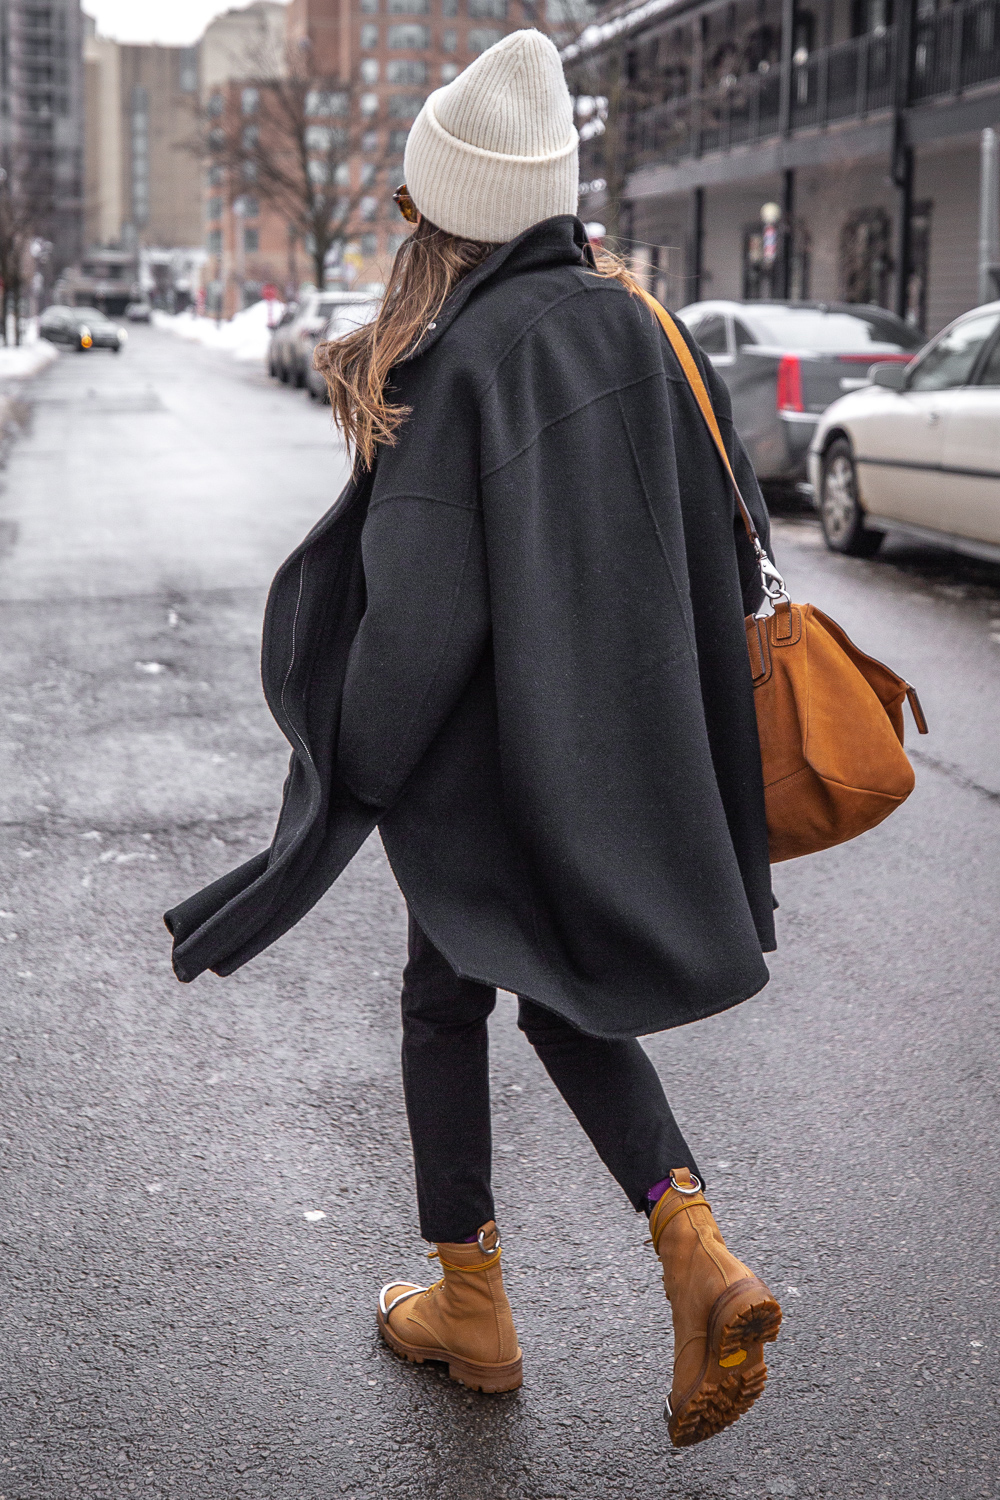 nathalie martin - vince wool coat, acne studios white sweater, pansy beanie, frank and eileen trouser joggers, alexander wang lyndon boots, givenchy medium pandora, bonlook jerry glasses, pinterest @woahstyle_7302.jpg